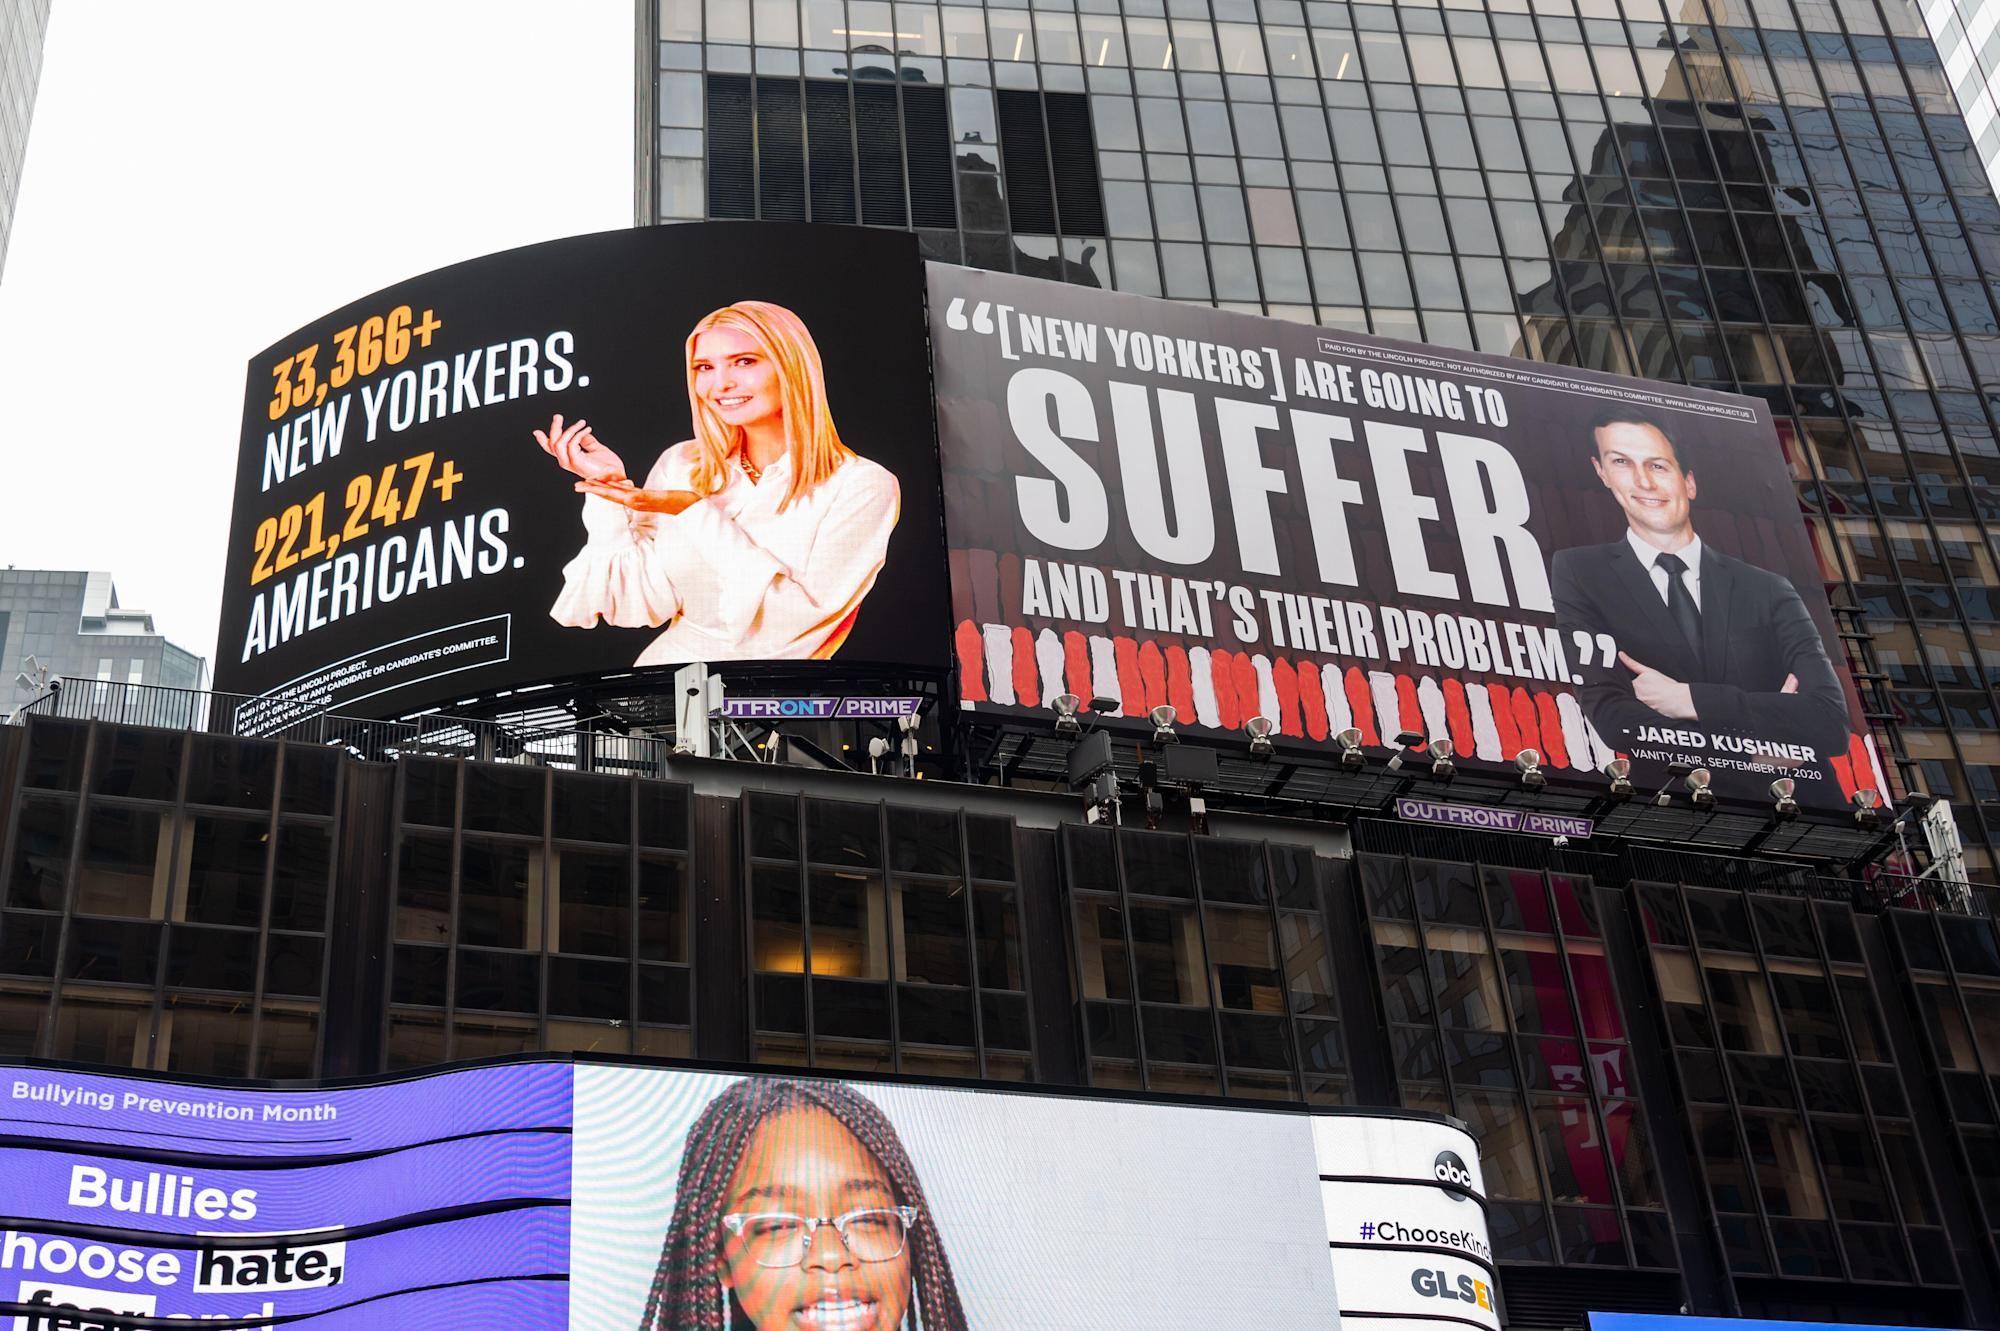 Ivanka Trump, Jared Kushner Threaten To Sue Lincoln Project Over Times Square Billboards